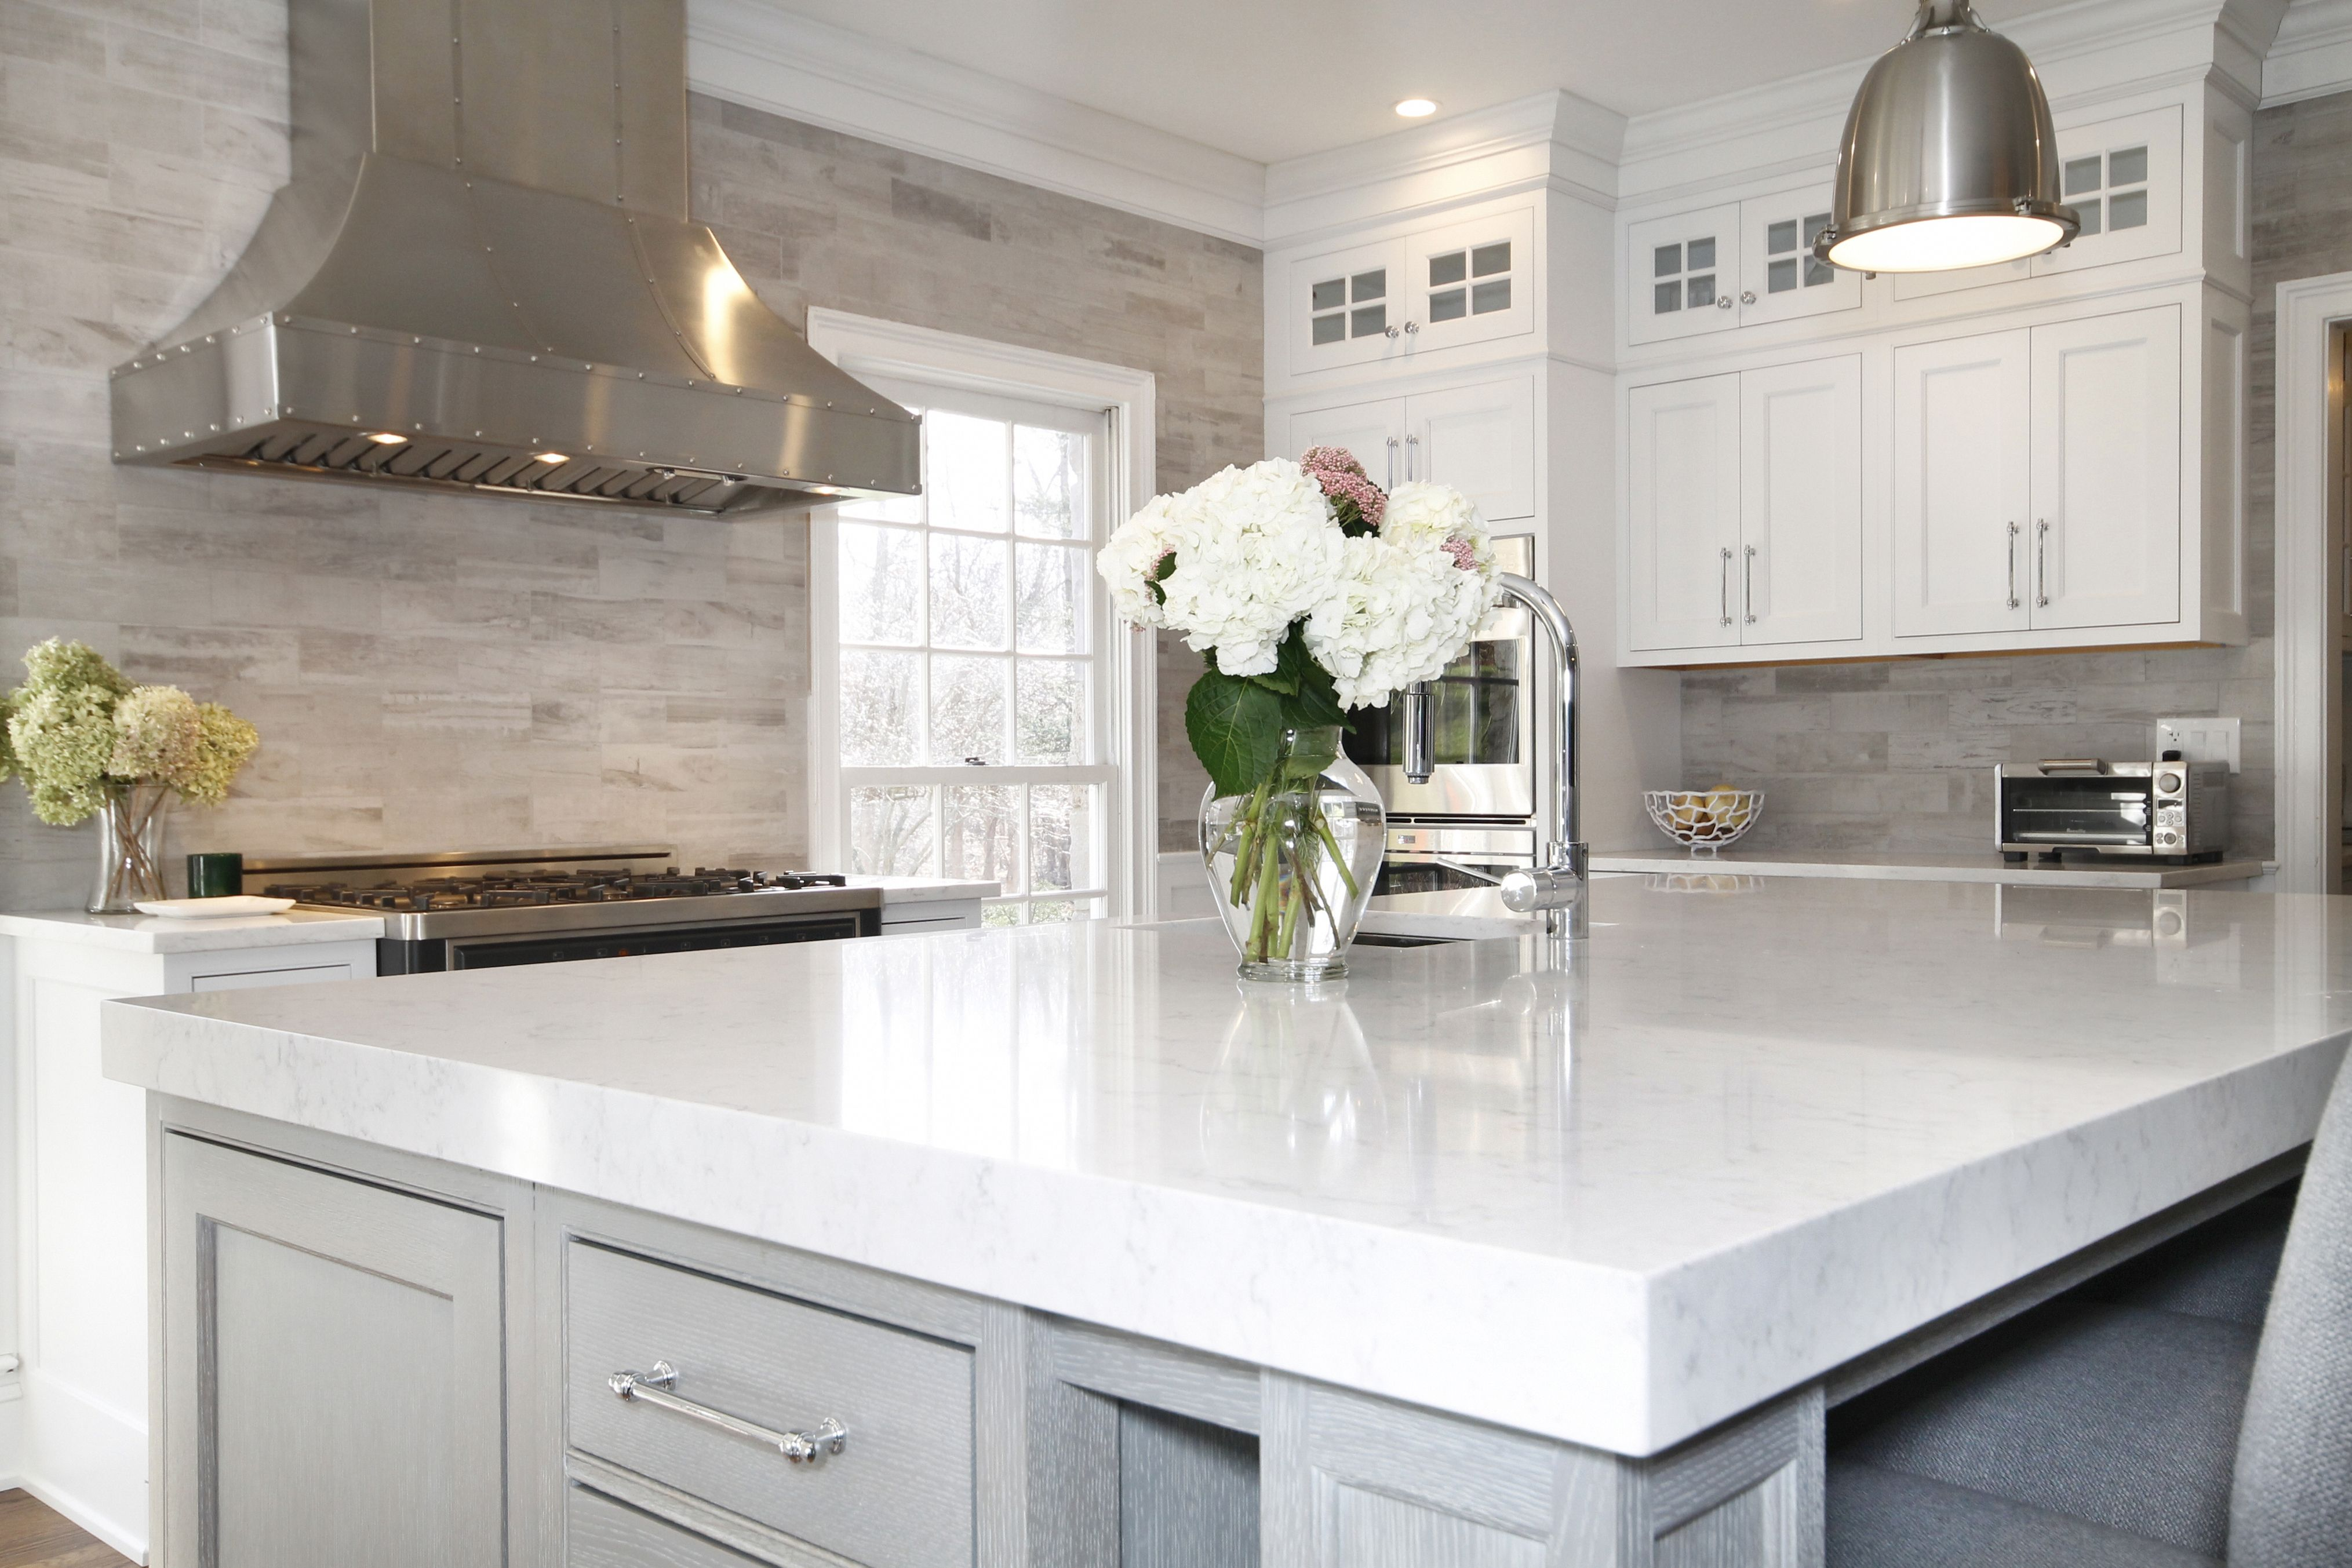 Modern Transitional Transitional Kitchen Design Country Kitchen Gray And White Kitchen